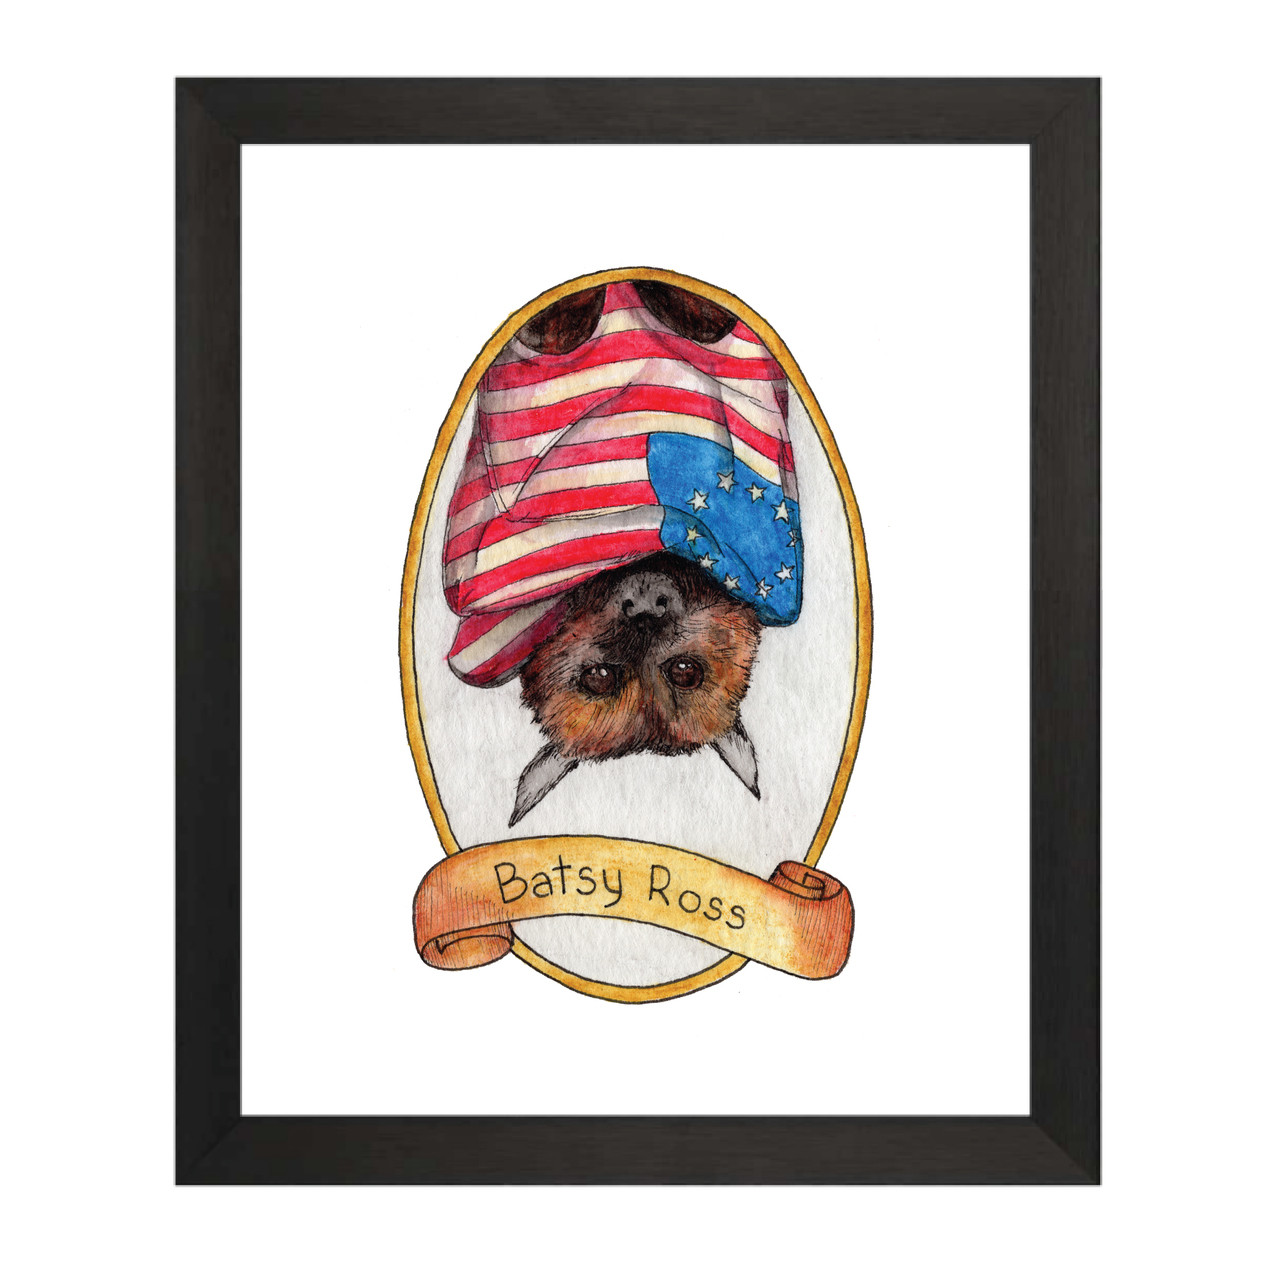 image about Betsy Ross Printable Pictures identified as Batsy Ross / Betsy Ross PreZOOdents Artwork Print